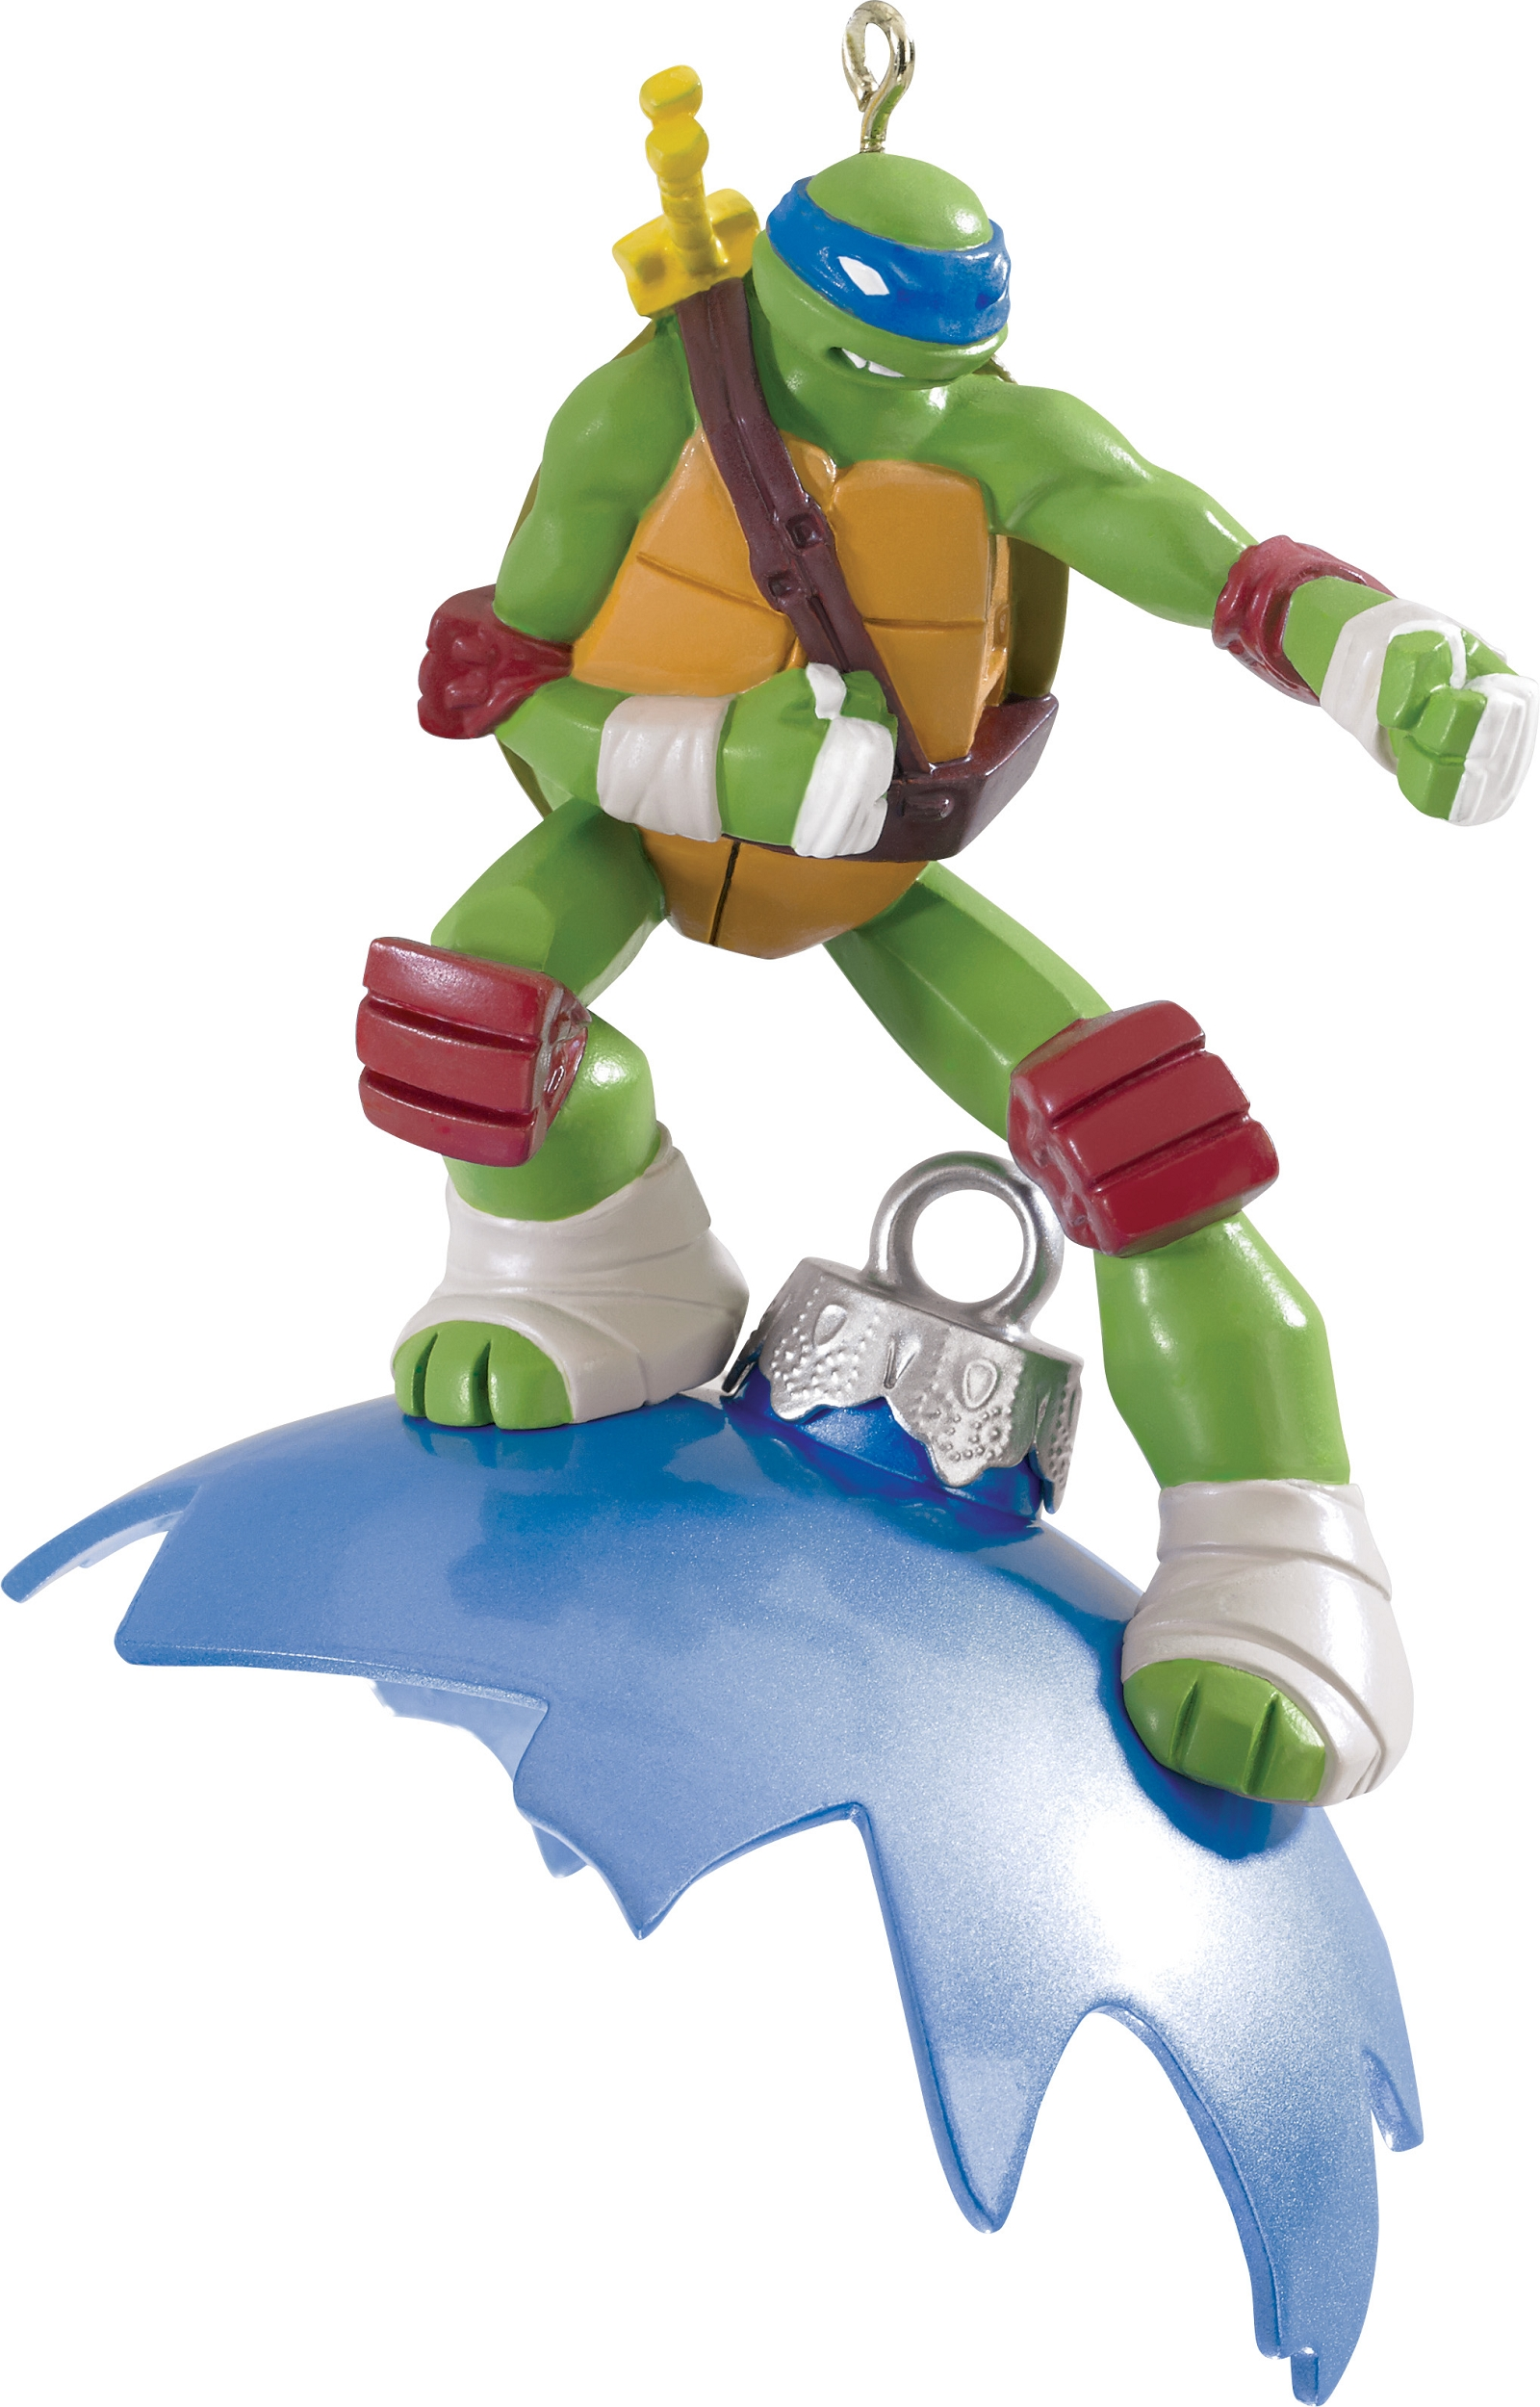 2015 Leonardo, Teenage Mutant Ninja Turtles Christmas Ornament ...